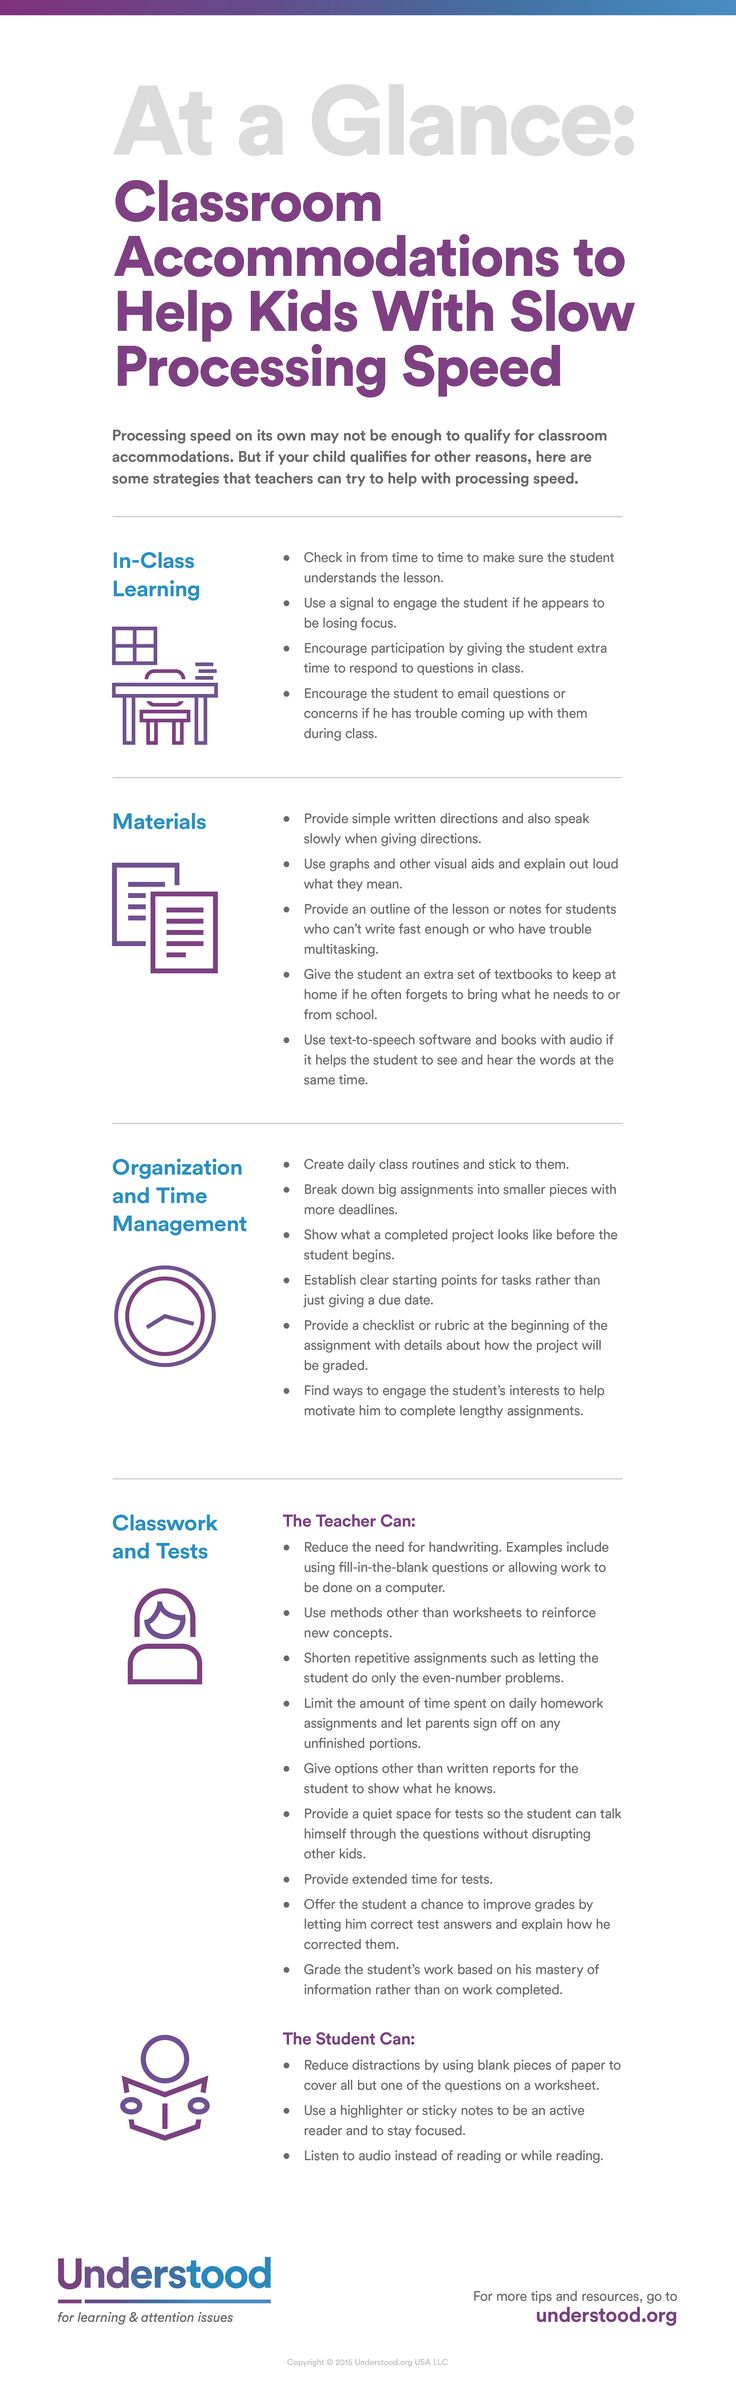 Classroom Accommodations for Slow Processing Speed